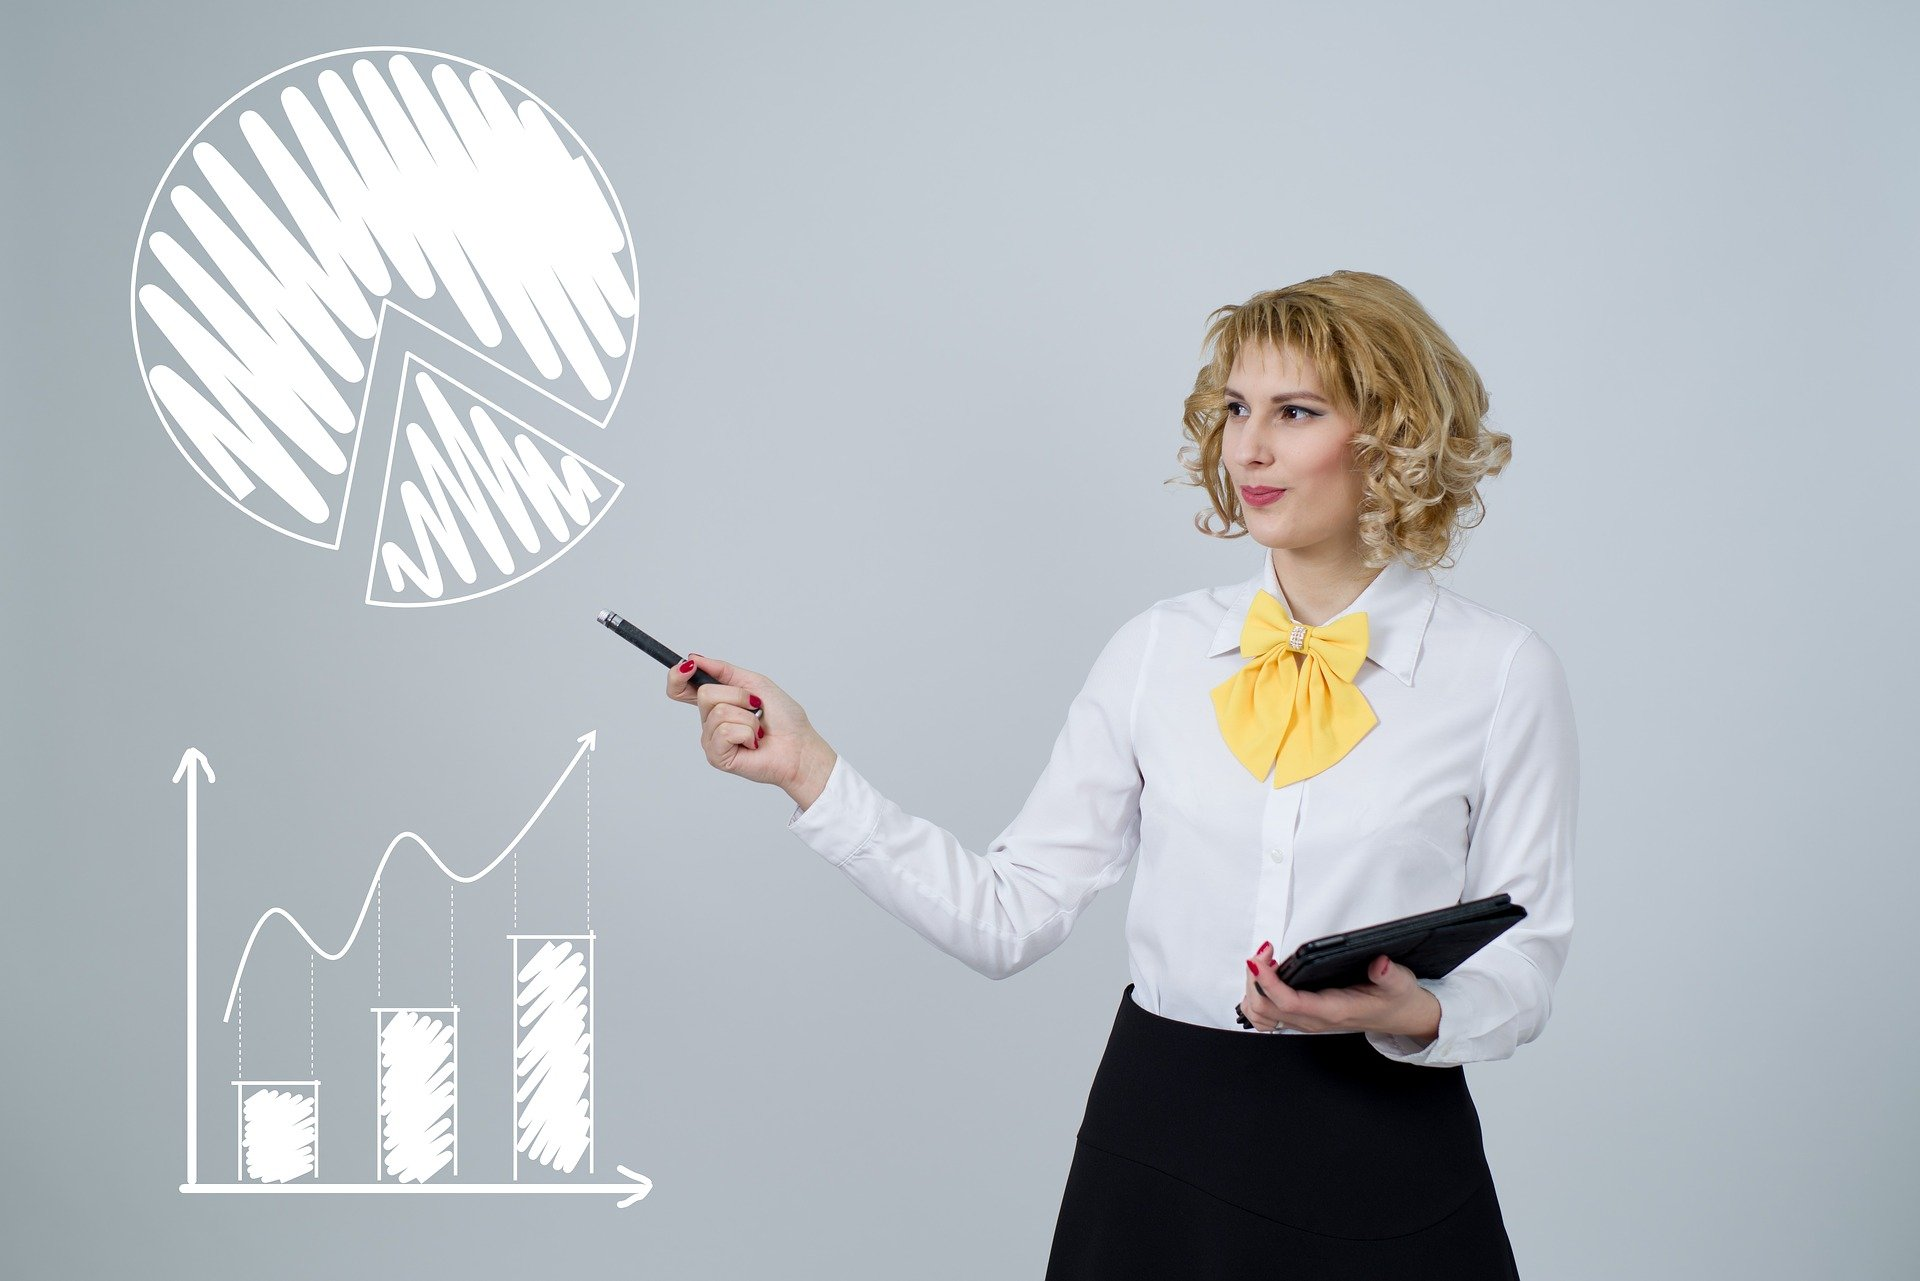 How to Increase Sales by Understanding and Relating to Your Customers